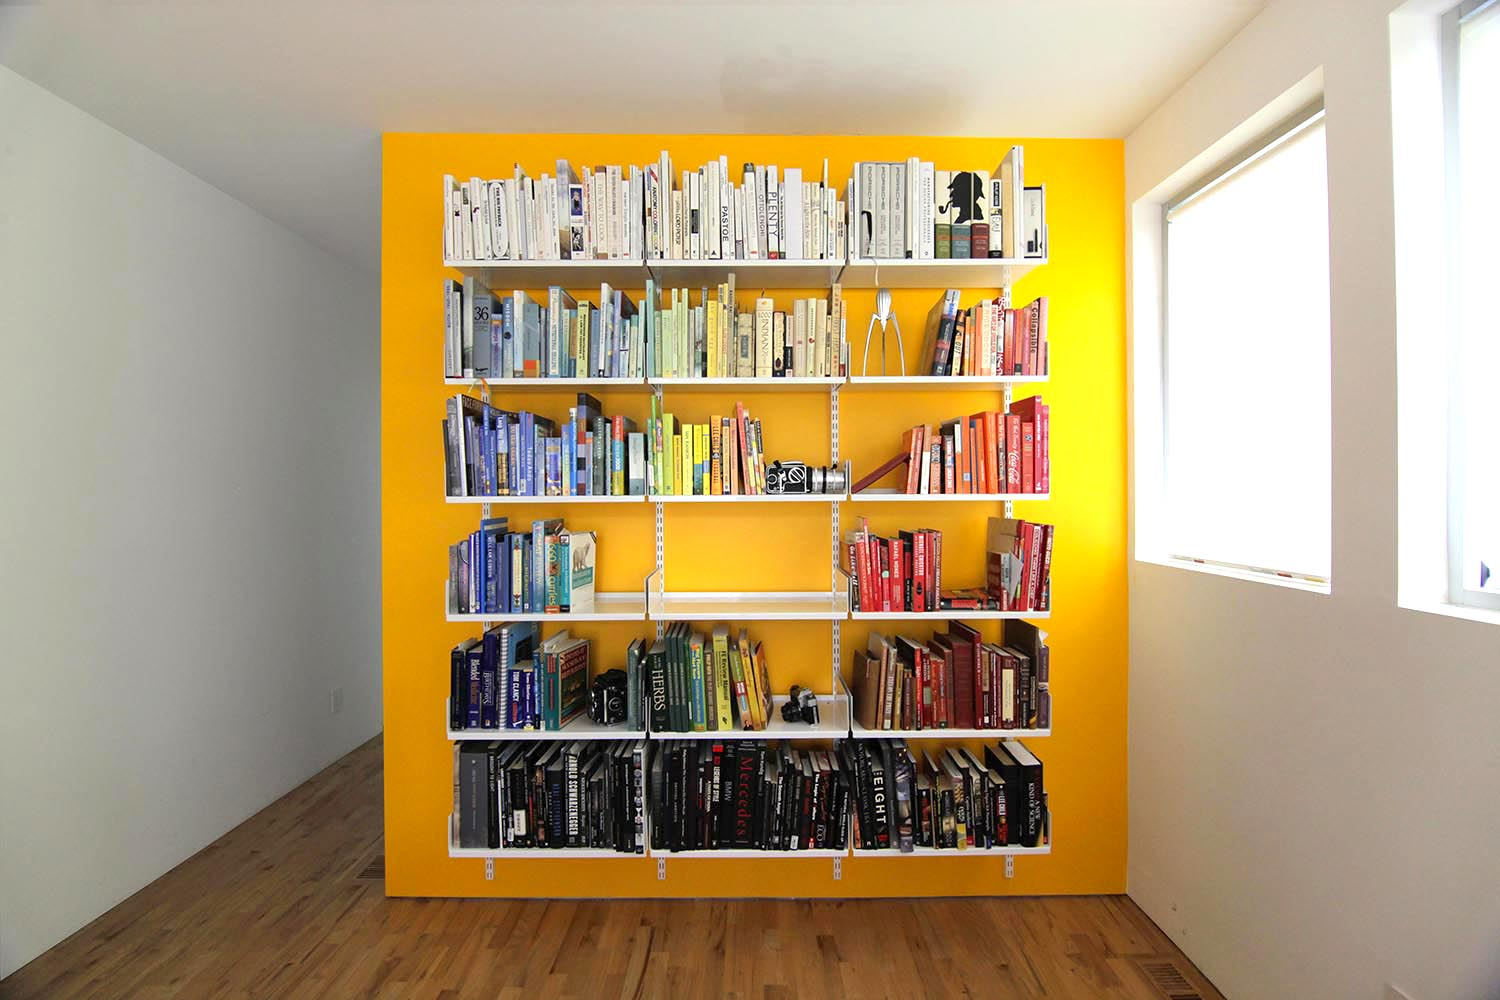 modular shelving system on bright wall color yellow